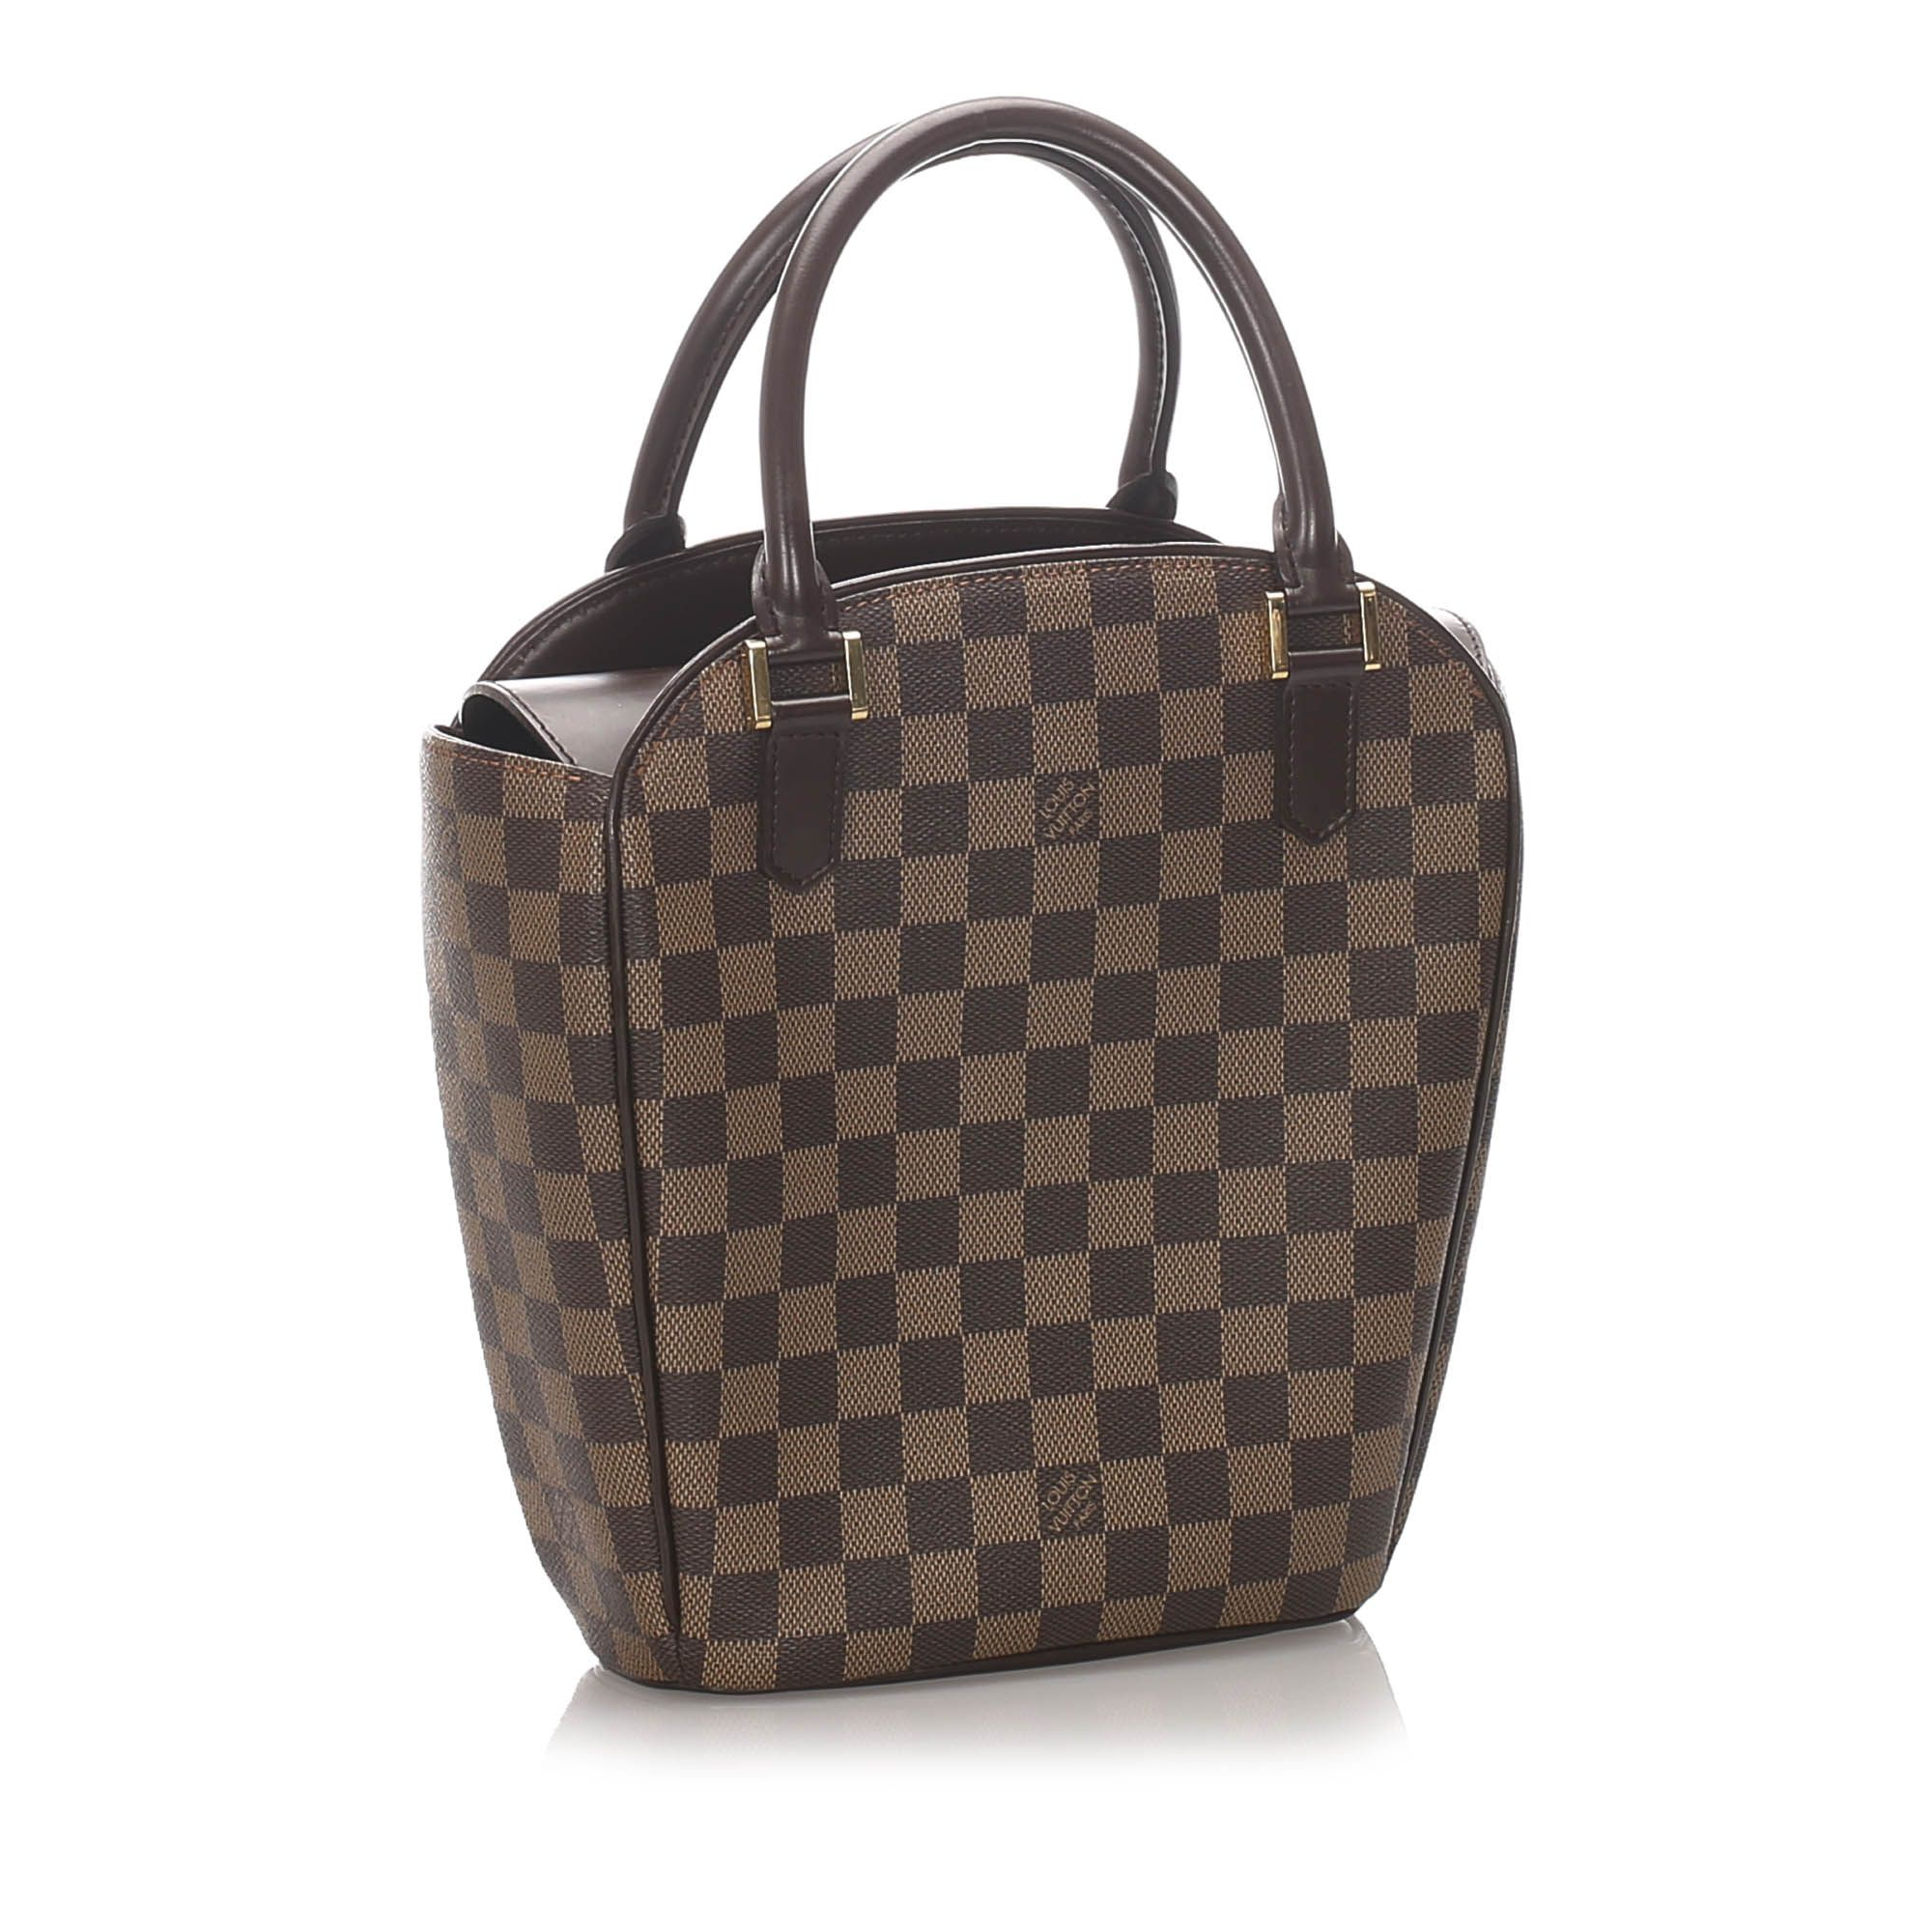 Vintage Louis Vuitton Damier Ebene Sarria Seau Brown